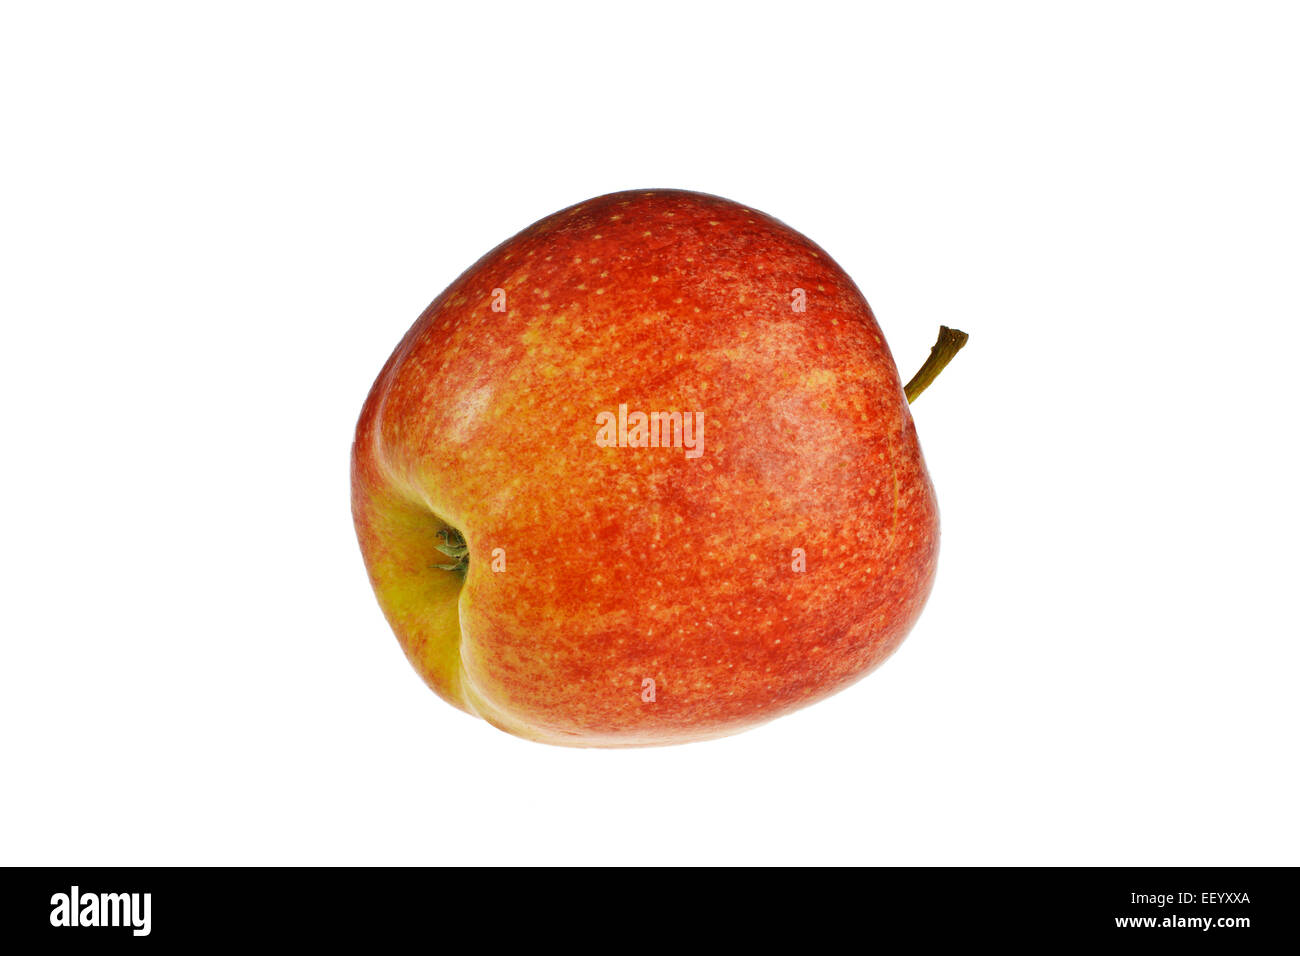 A red apple released - Stock Image